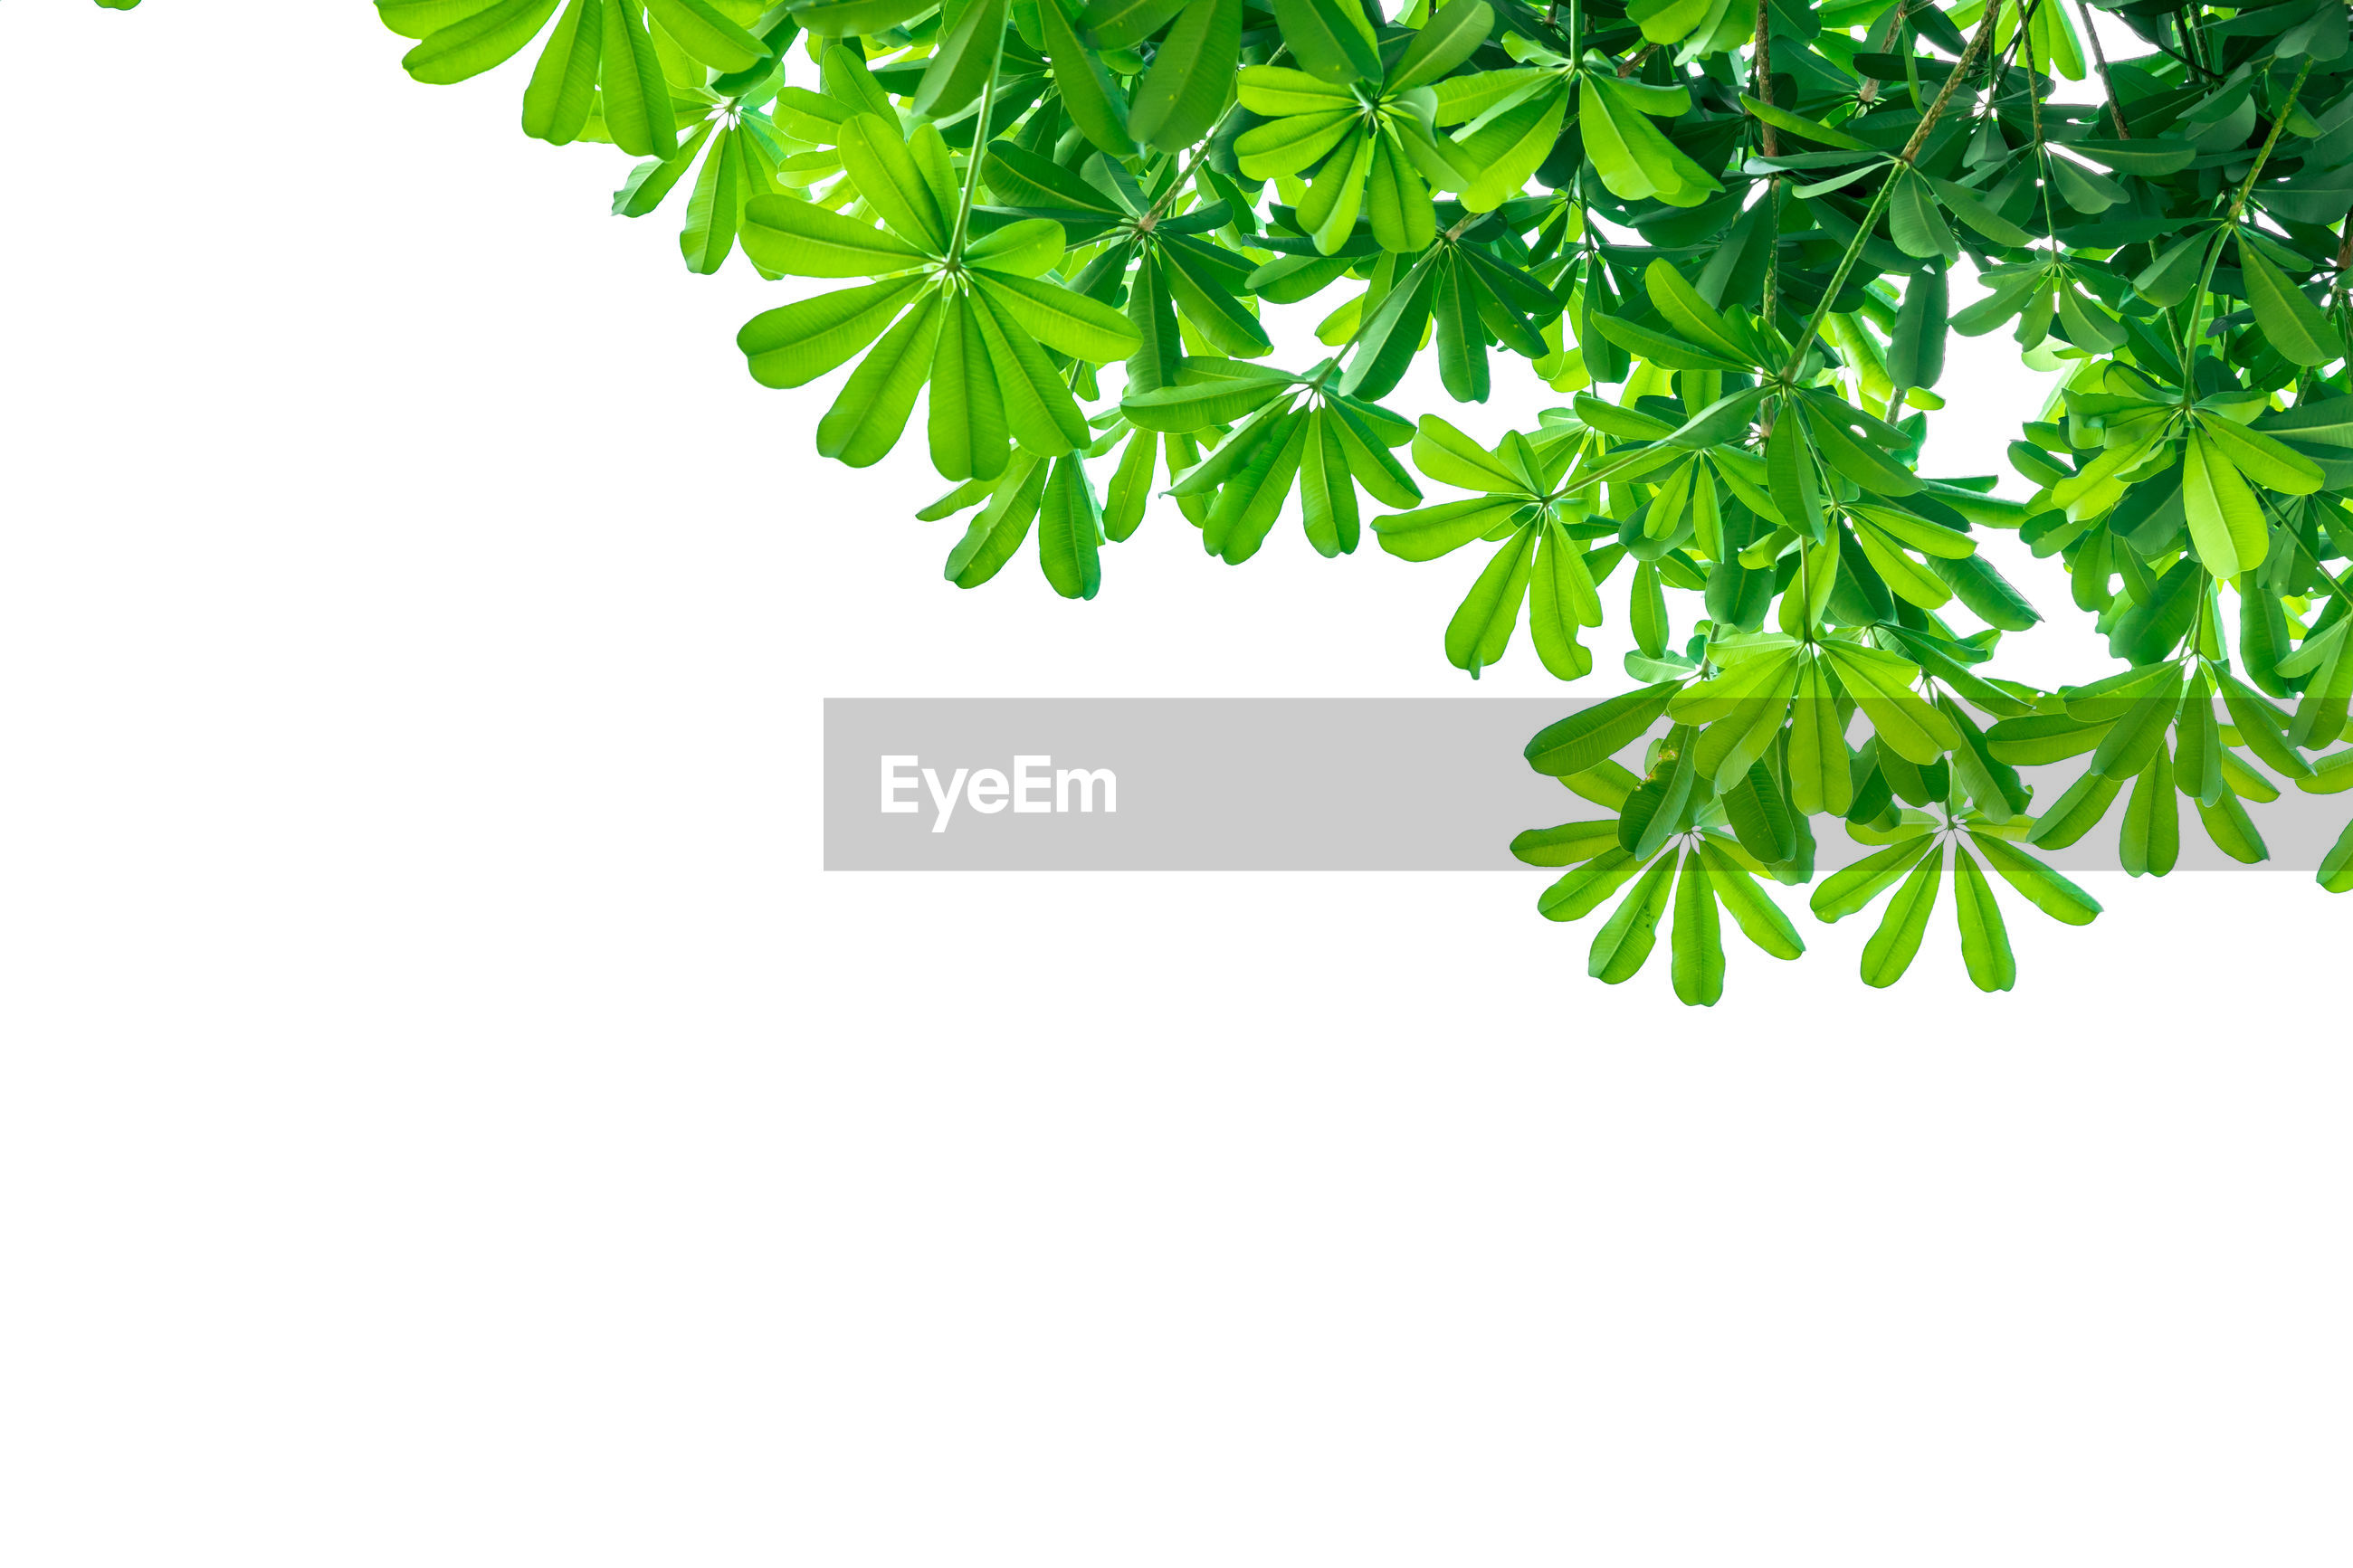 LOW ANGLE VIEW OF GREEN PLANT AGAINST WHITE BACKGROUND